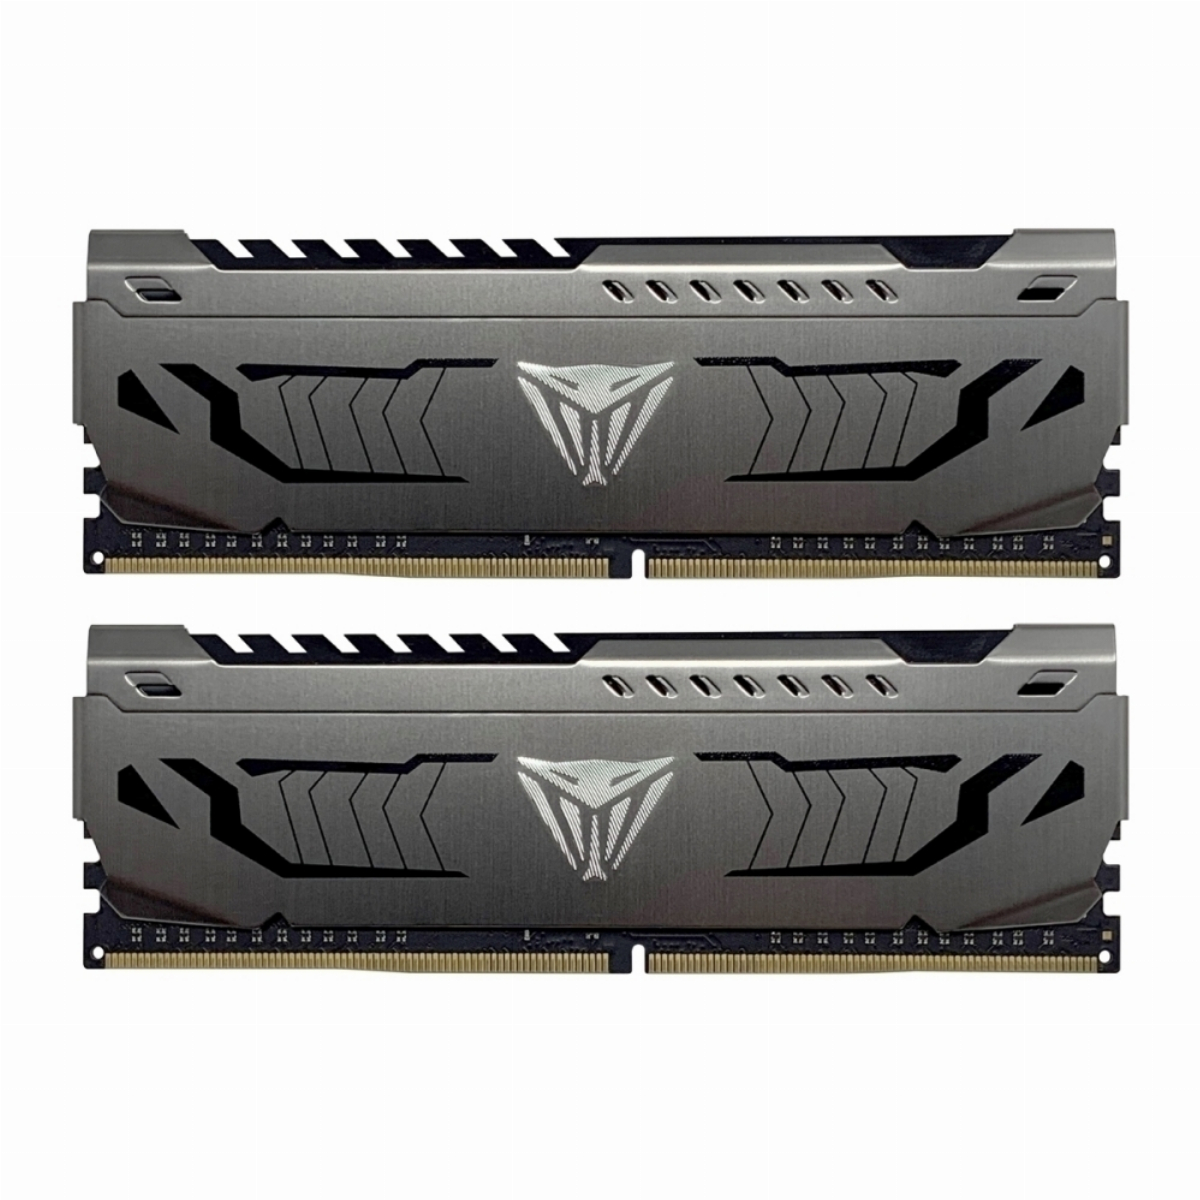 Памет Patriot Viper Steel 32GB (2x16GB) 3000Mhz DDR4 CL16